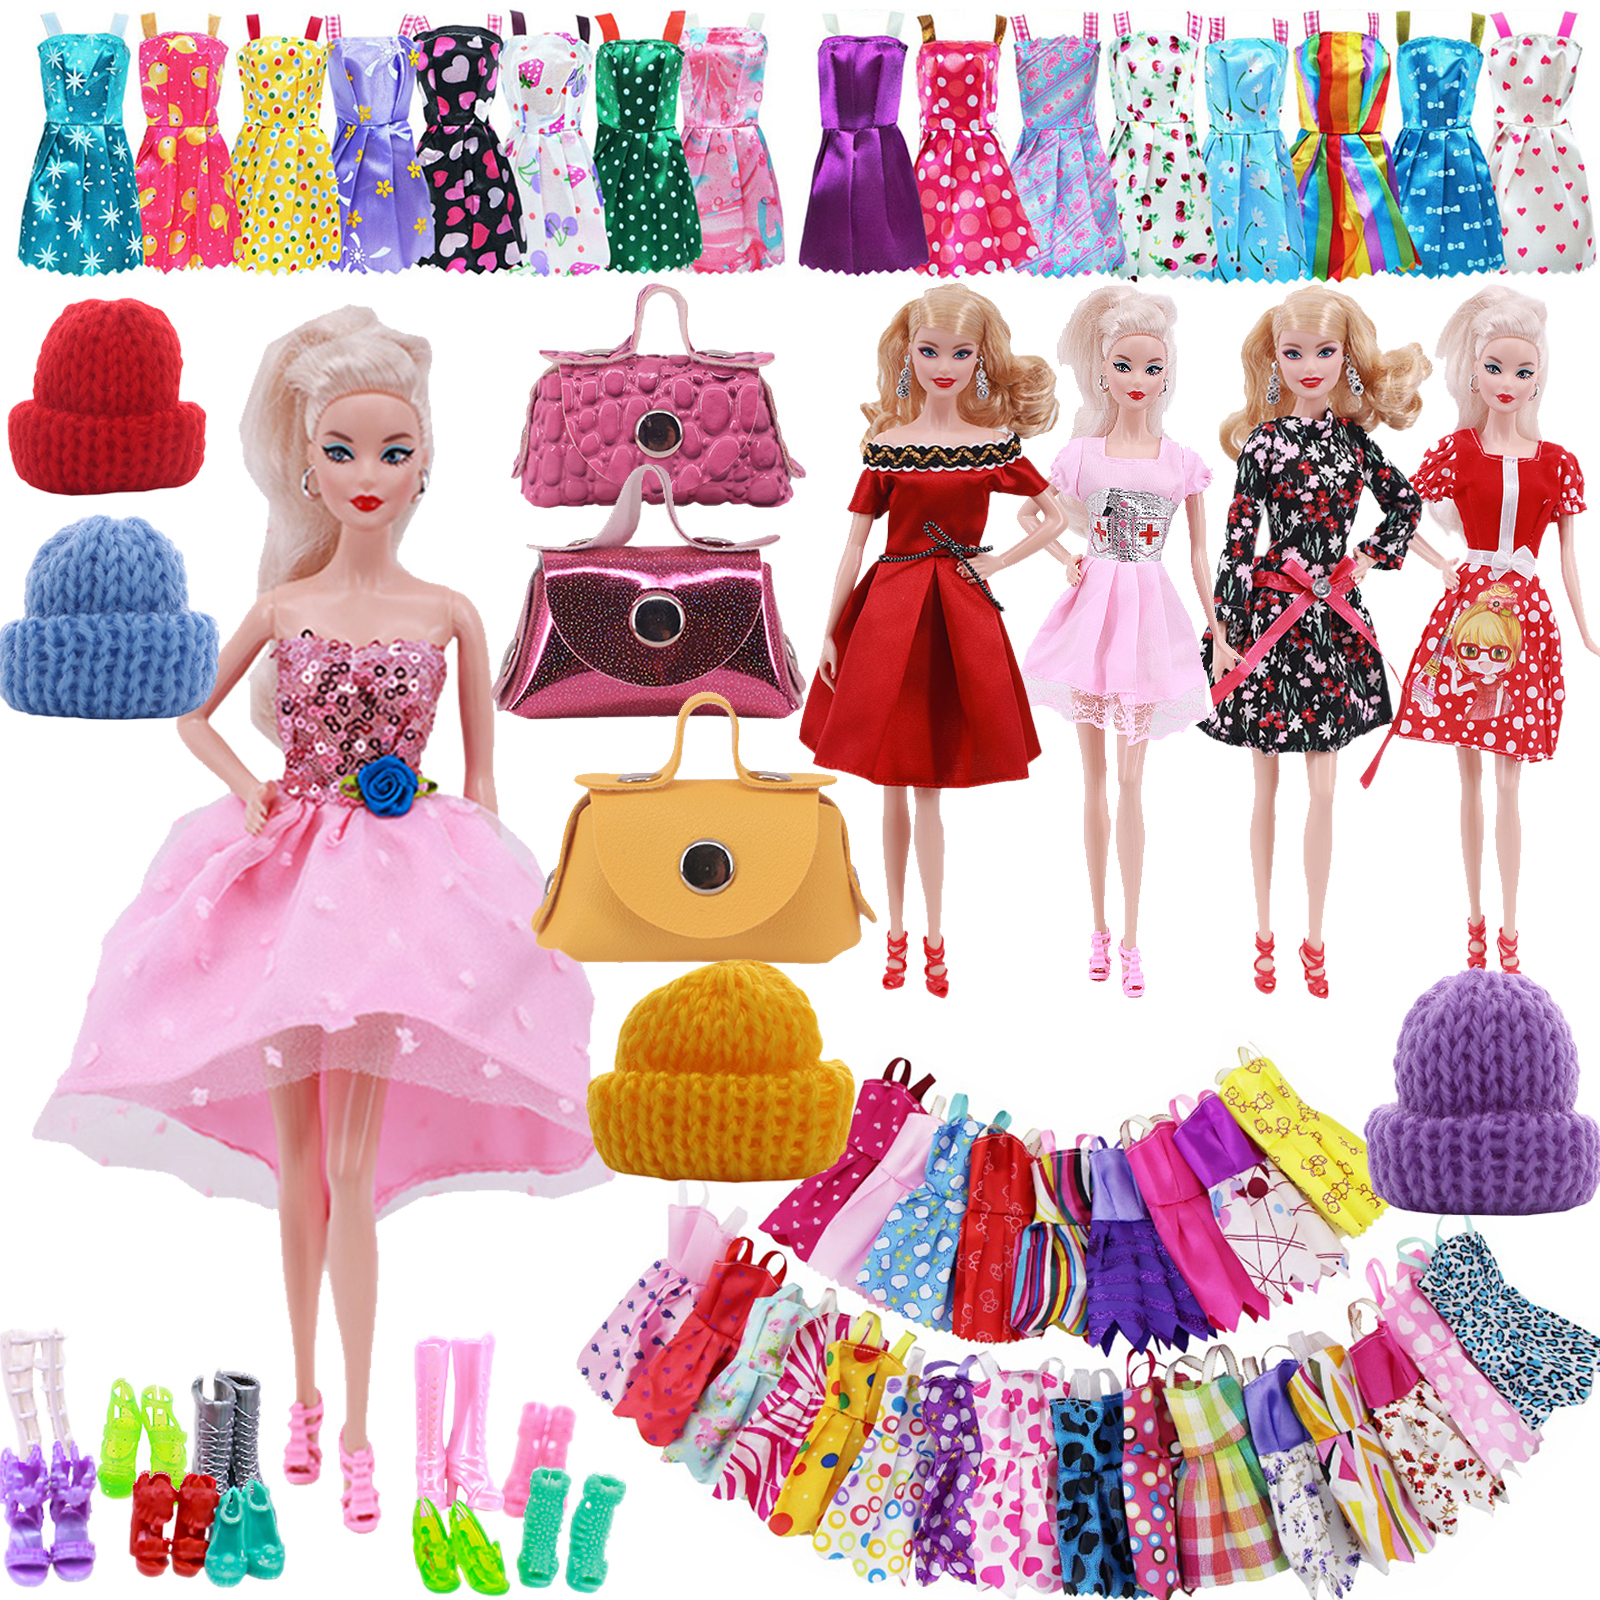 Barbies Doll Clothes Evening Dress&Accessories Suitable For 11.5inch Barbies Doll Cocktail Daily Casual Clothing Accessories